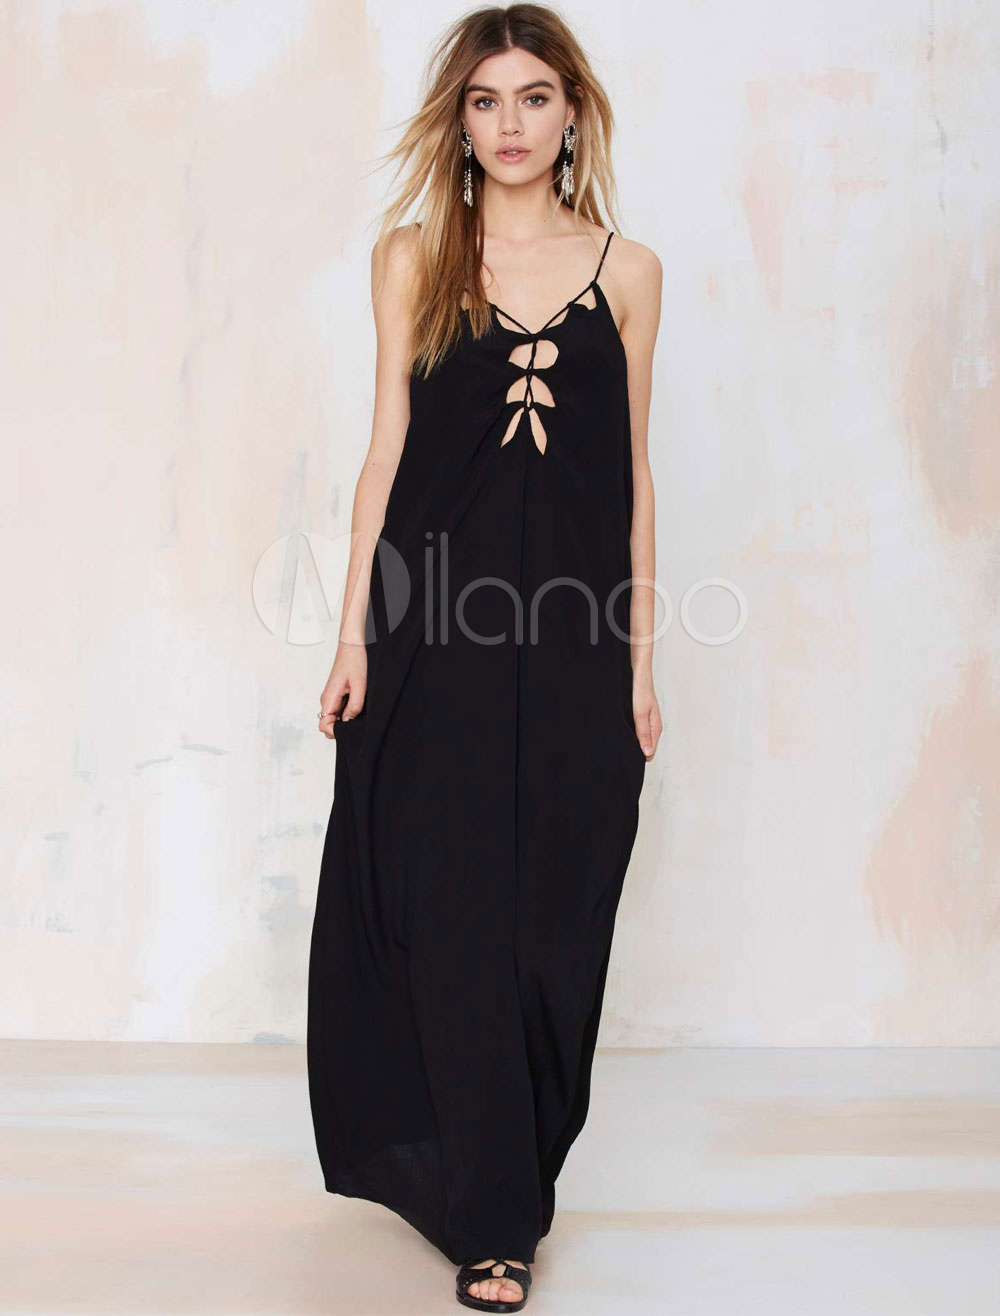 Black Maxi Dress Strappy Sleeveless Cut Out Backless Cotton Long Dress (Women\\'s Clothing Maxi Dresses) photo